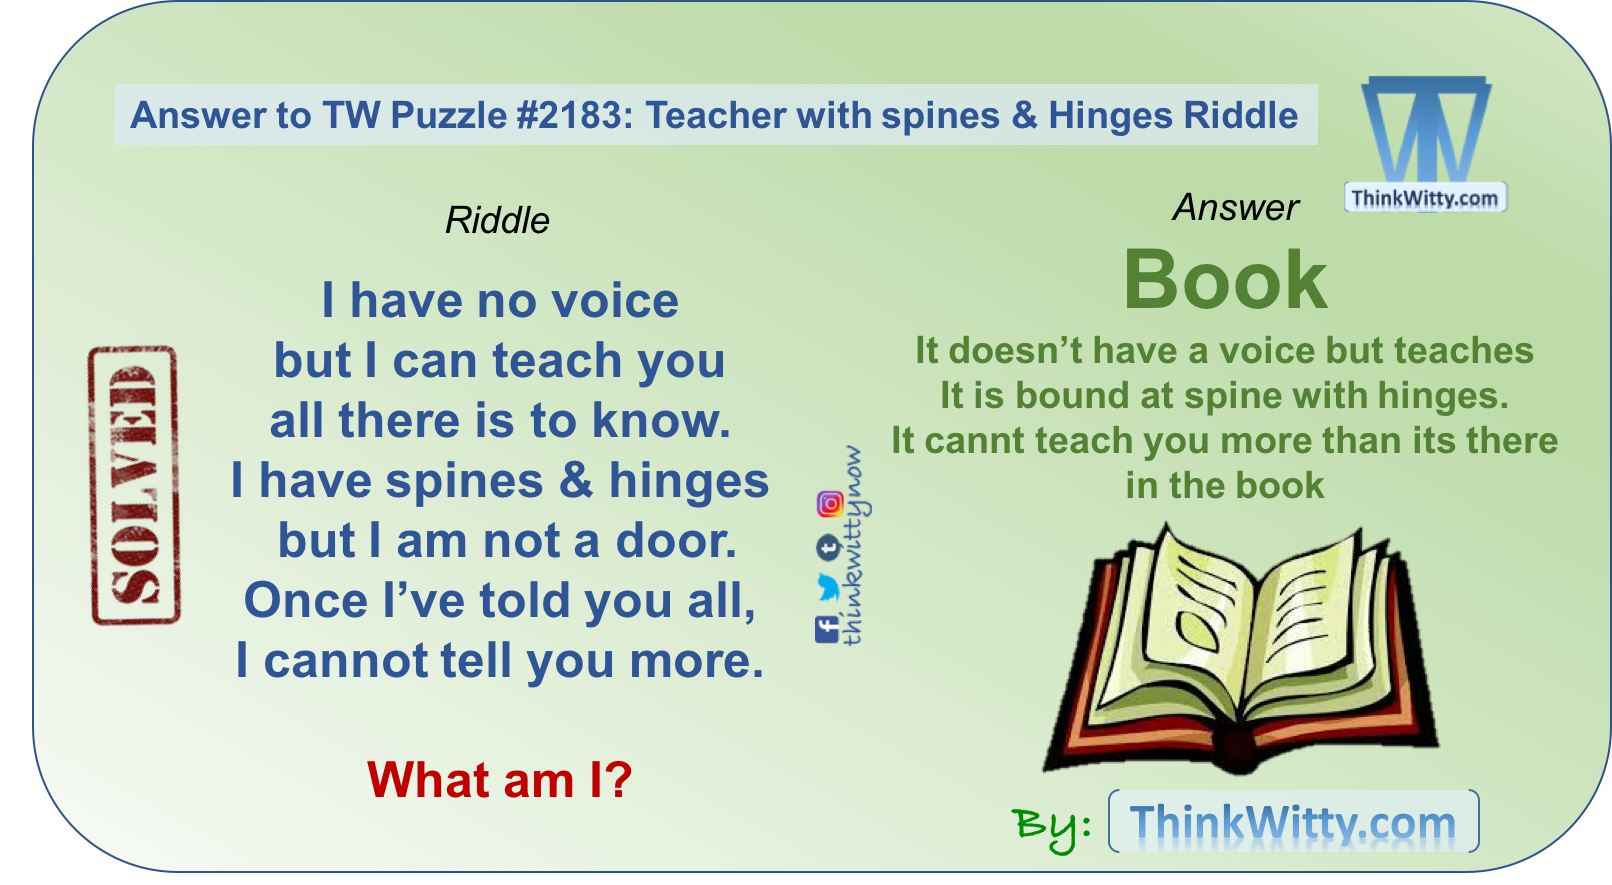 Answer to Teacher with spines & Hinges Riddle - Think Witty